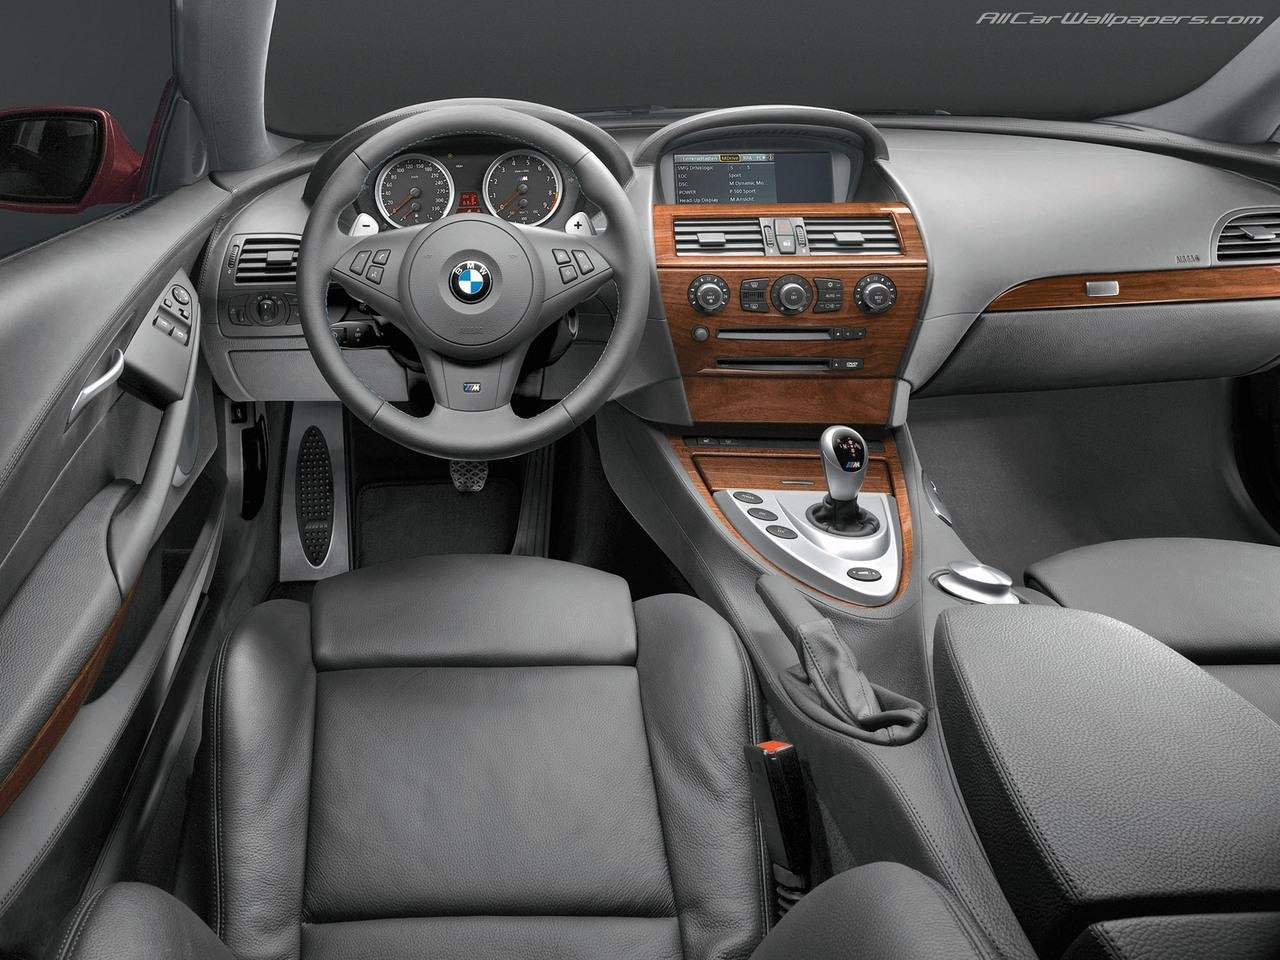 Latest Top 50 Luxury Car Interior Designs Free Download